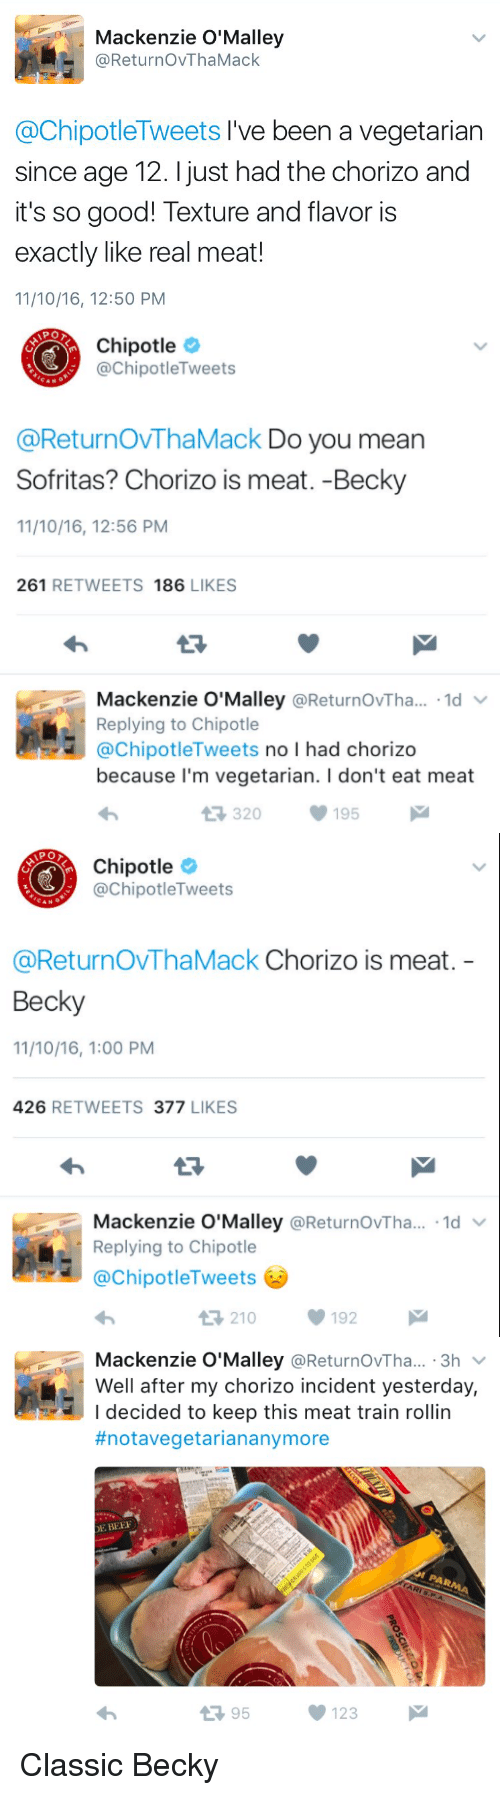 Beer, Chipotle, and Funny: Mackenzie O'Malley  ReturnovThaMack  @ChipotleTweets I've been a vegetarian  since age 12. just had the chorizo and  it's so good! Texture and flavor is  exactly like real meat!  11/10/16, 12:50 PM   Chipotle  @Chipotle Tweets  @ReturnovThaMack Do you mean  Sofritas? Chorizo is meat. -Becky  11/10/16, 12:56 PM  261  RETWEETS  186  LIKES  Mackenzie O'Malley  Returnov Tha...  1d  V  Replying to Chipotle  @Chipotle Tweets  no l had chorizo  because I'm vegetarian. l don't eat meat  t R, 320  195  M   Chipotle  @Chipotle Tweets  @Return OVThaMack Chorizo is meat  Becky  11/10/16, 1:00 PM  426  RETWEETS 377  LIKES  Mackenzie O'Malley  @ReturnovTha... 1d  v  Replying to Chipotle  ChipotleTweets  V 192  t 210   Mackenzie O'Malley  @ReturnovTha... 3h  Well after my chorizo incident yesterday,  I decided to keep this meat train rollin  #notavegetarian anymore  DE BEER  t 95  123 Classic Becky